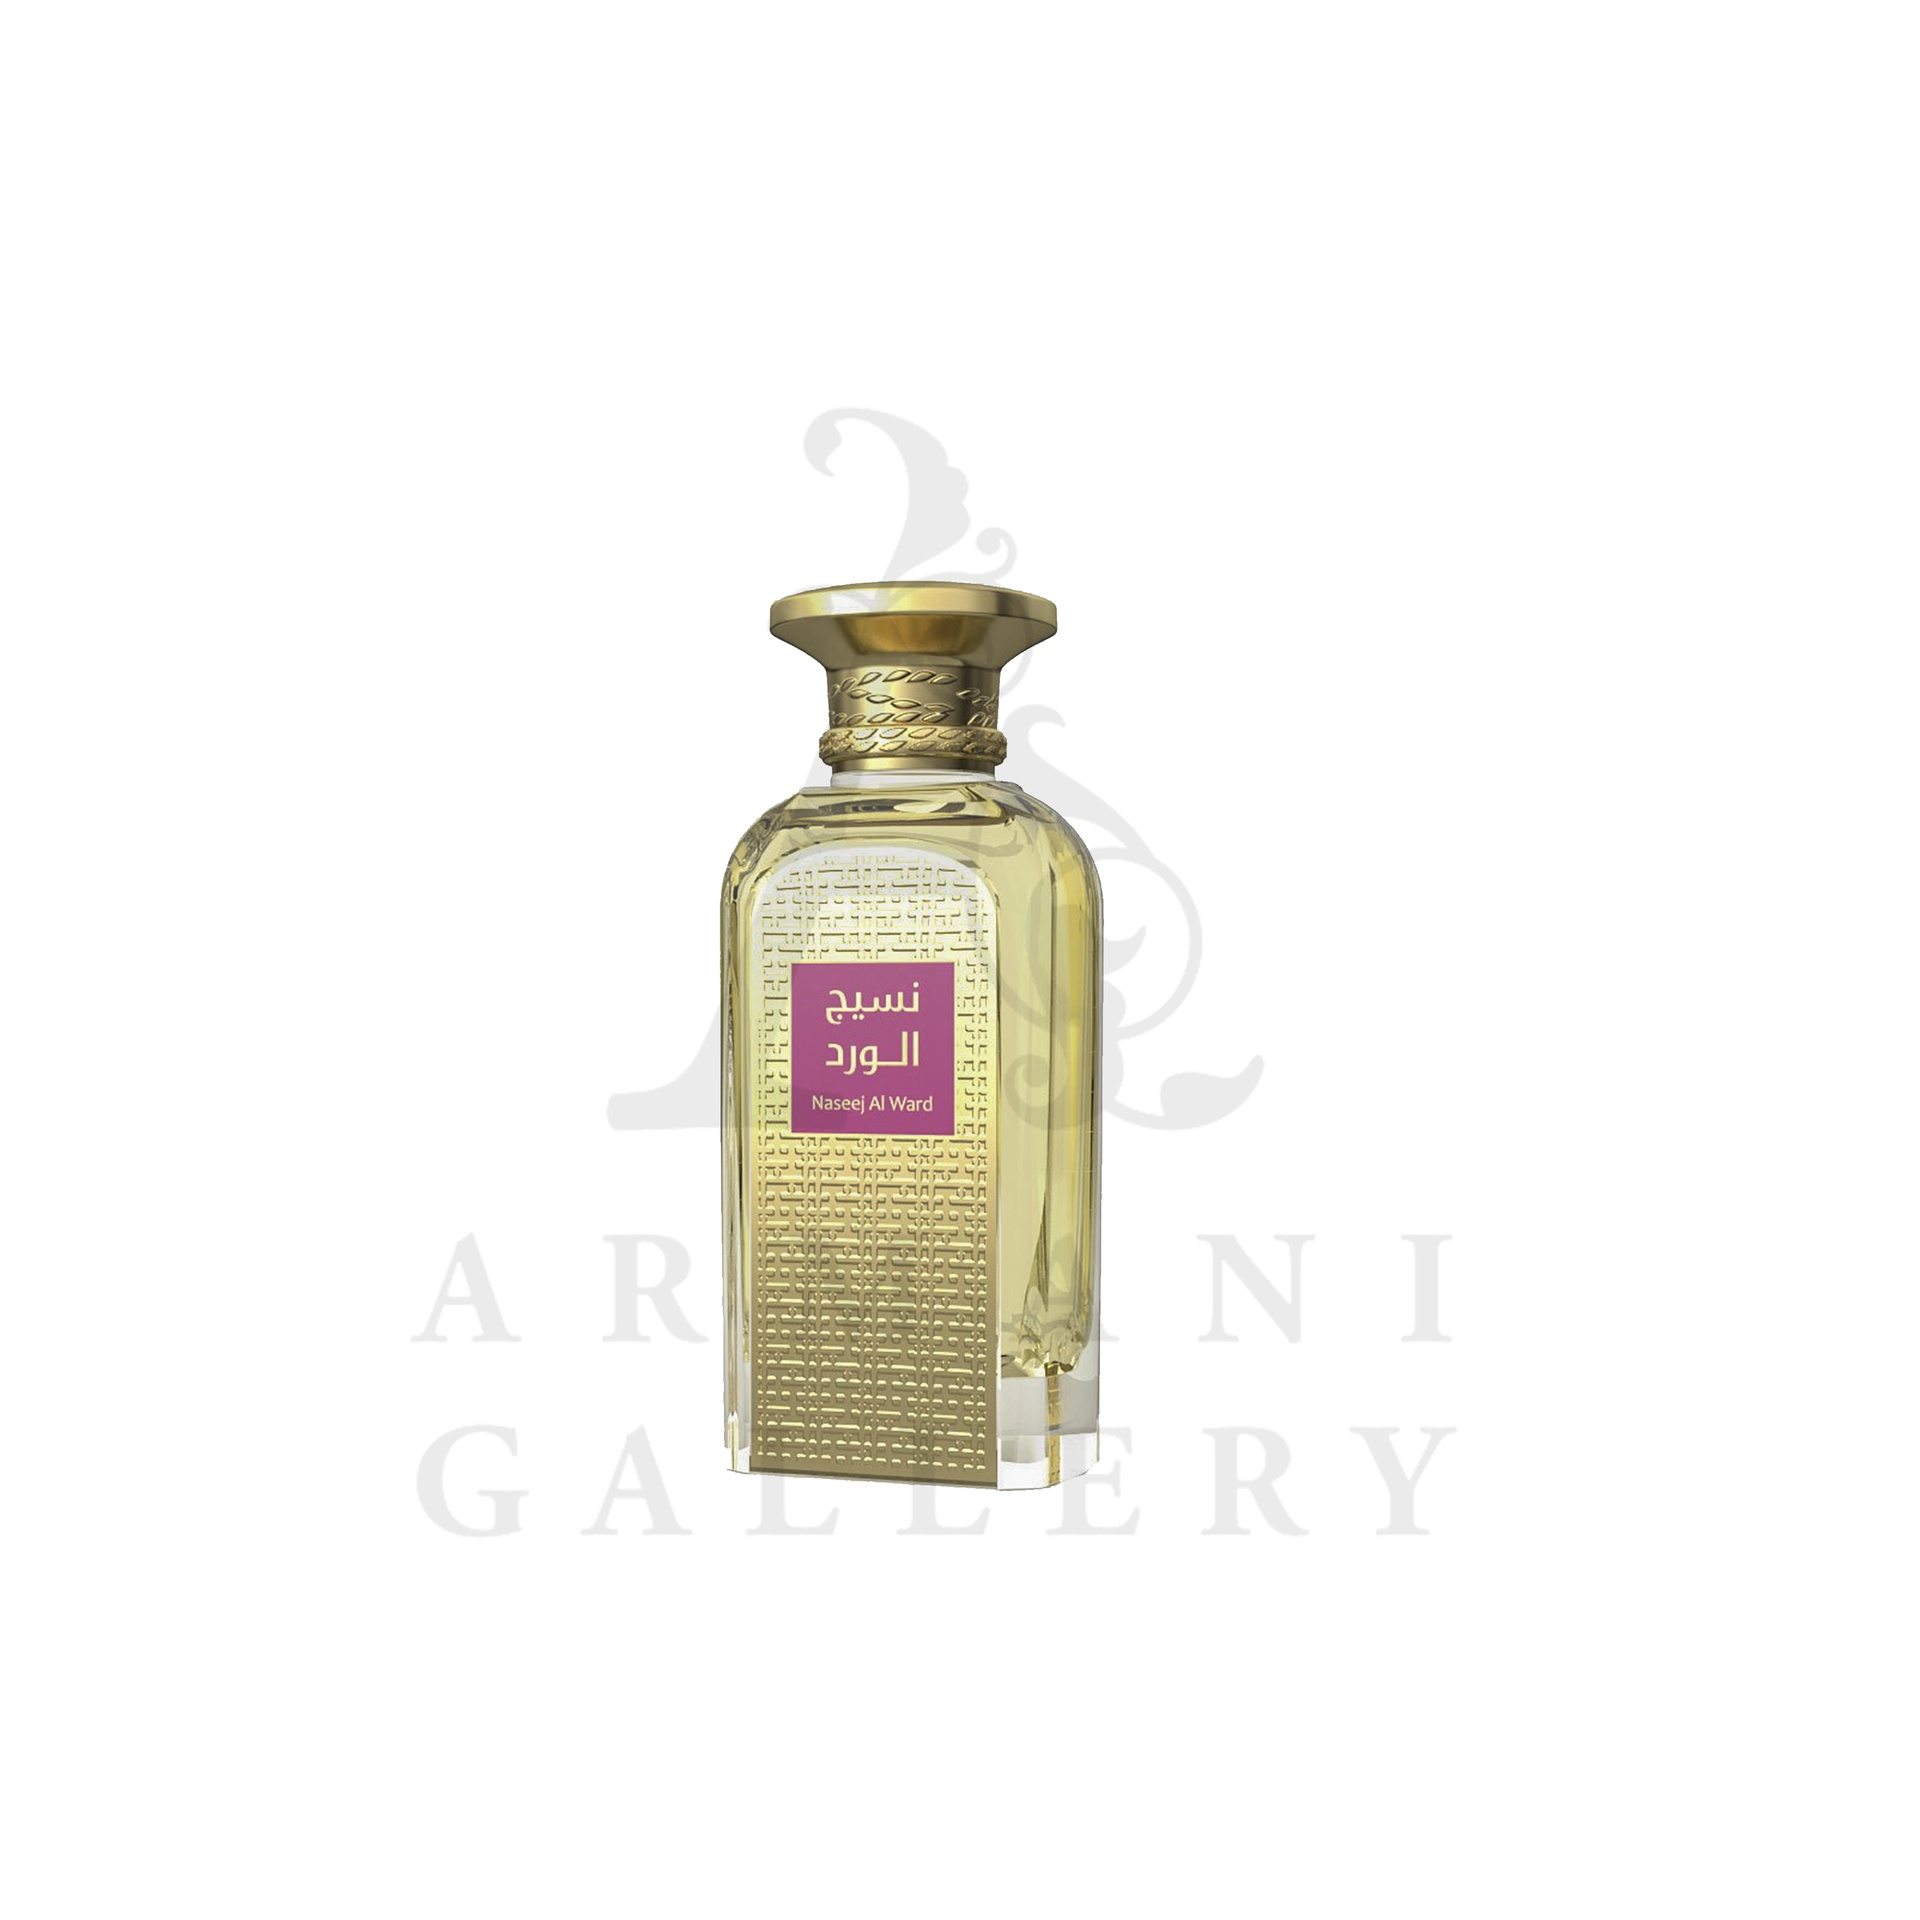 Buy Naseej Al Ward 50Ml EDP